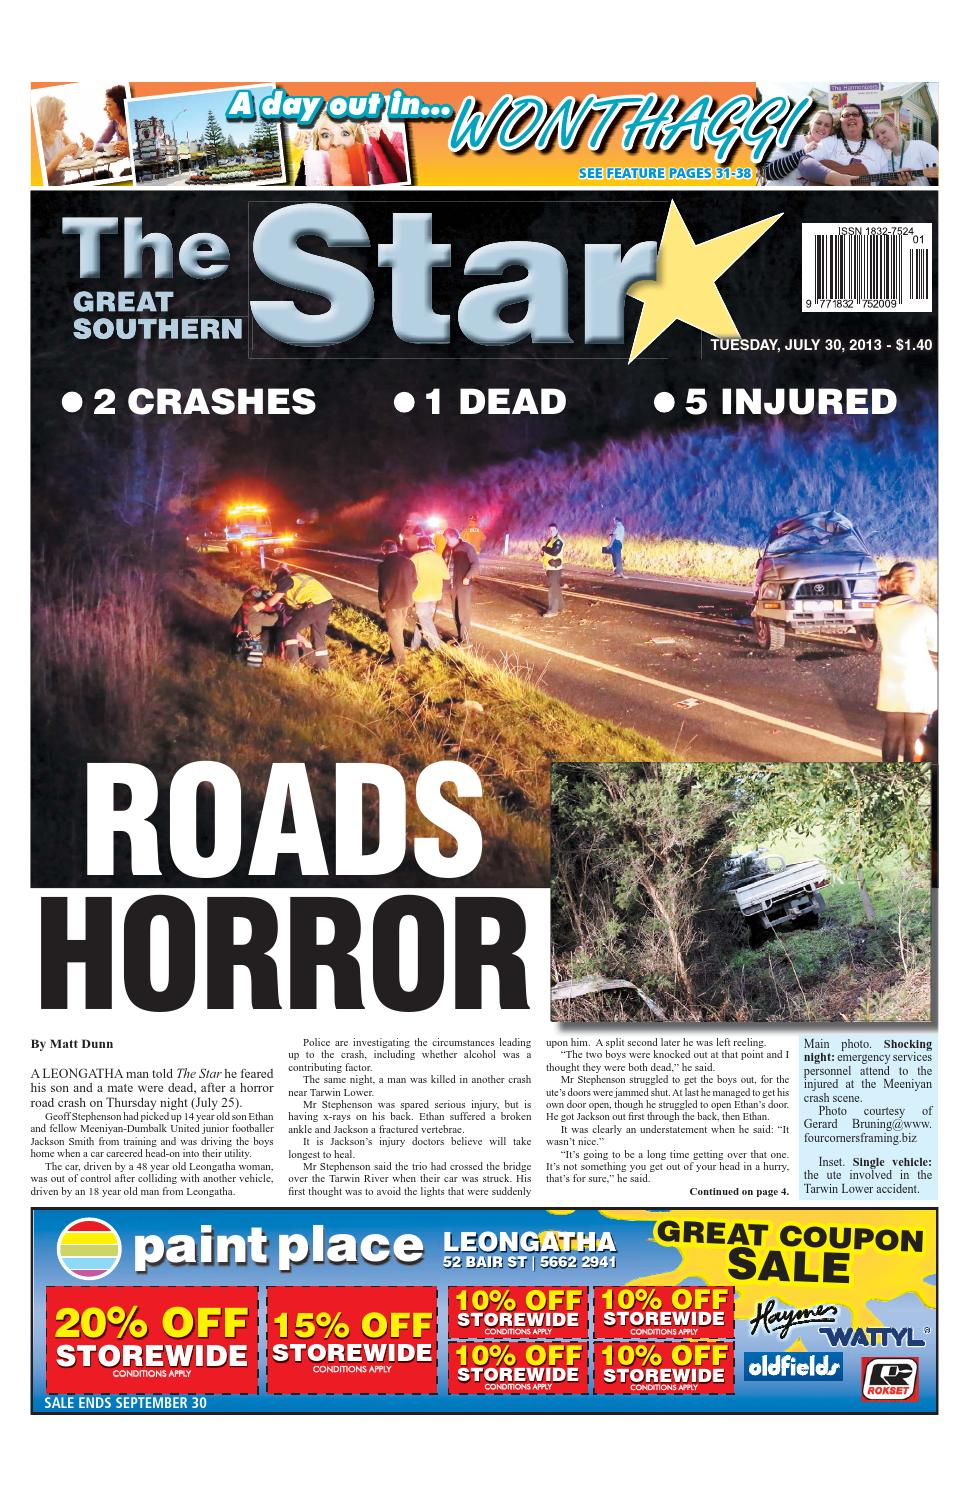 The Great Southern Star July 30 2013 By Brian Ellul Blog Airx New Controller Issuu